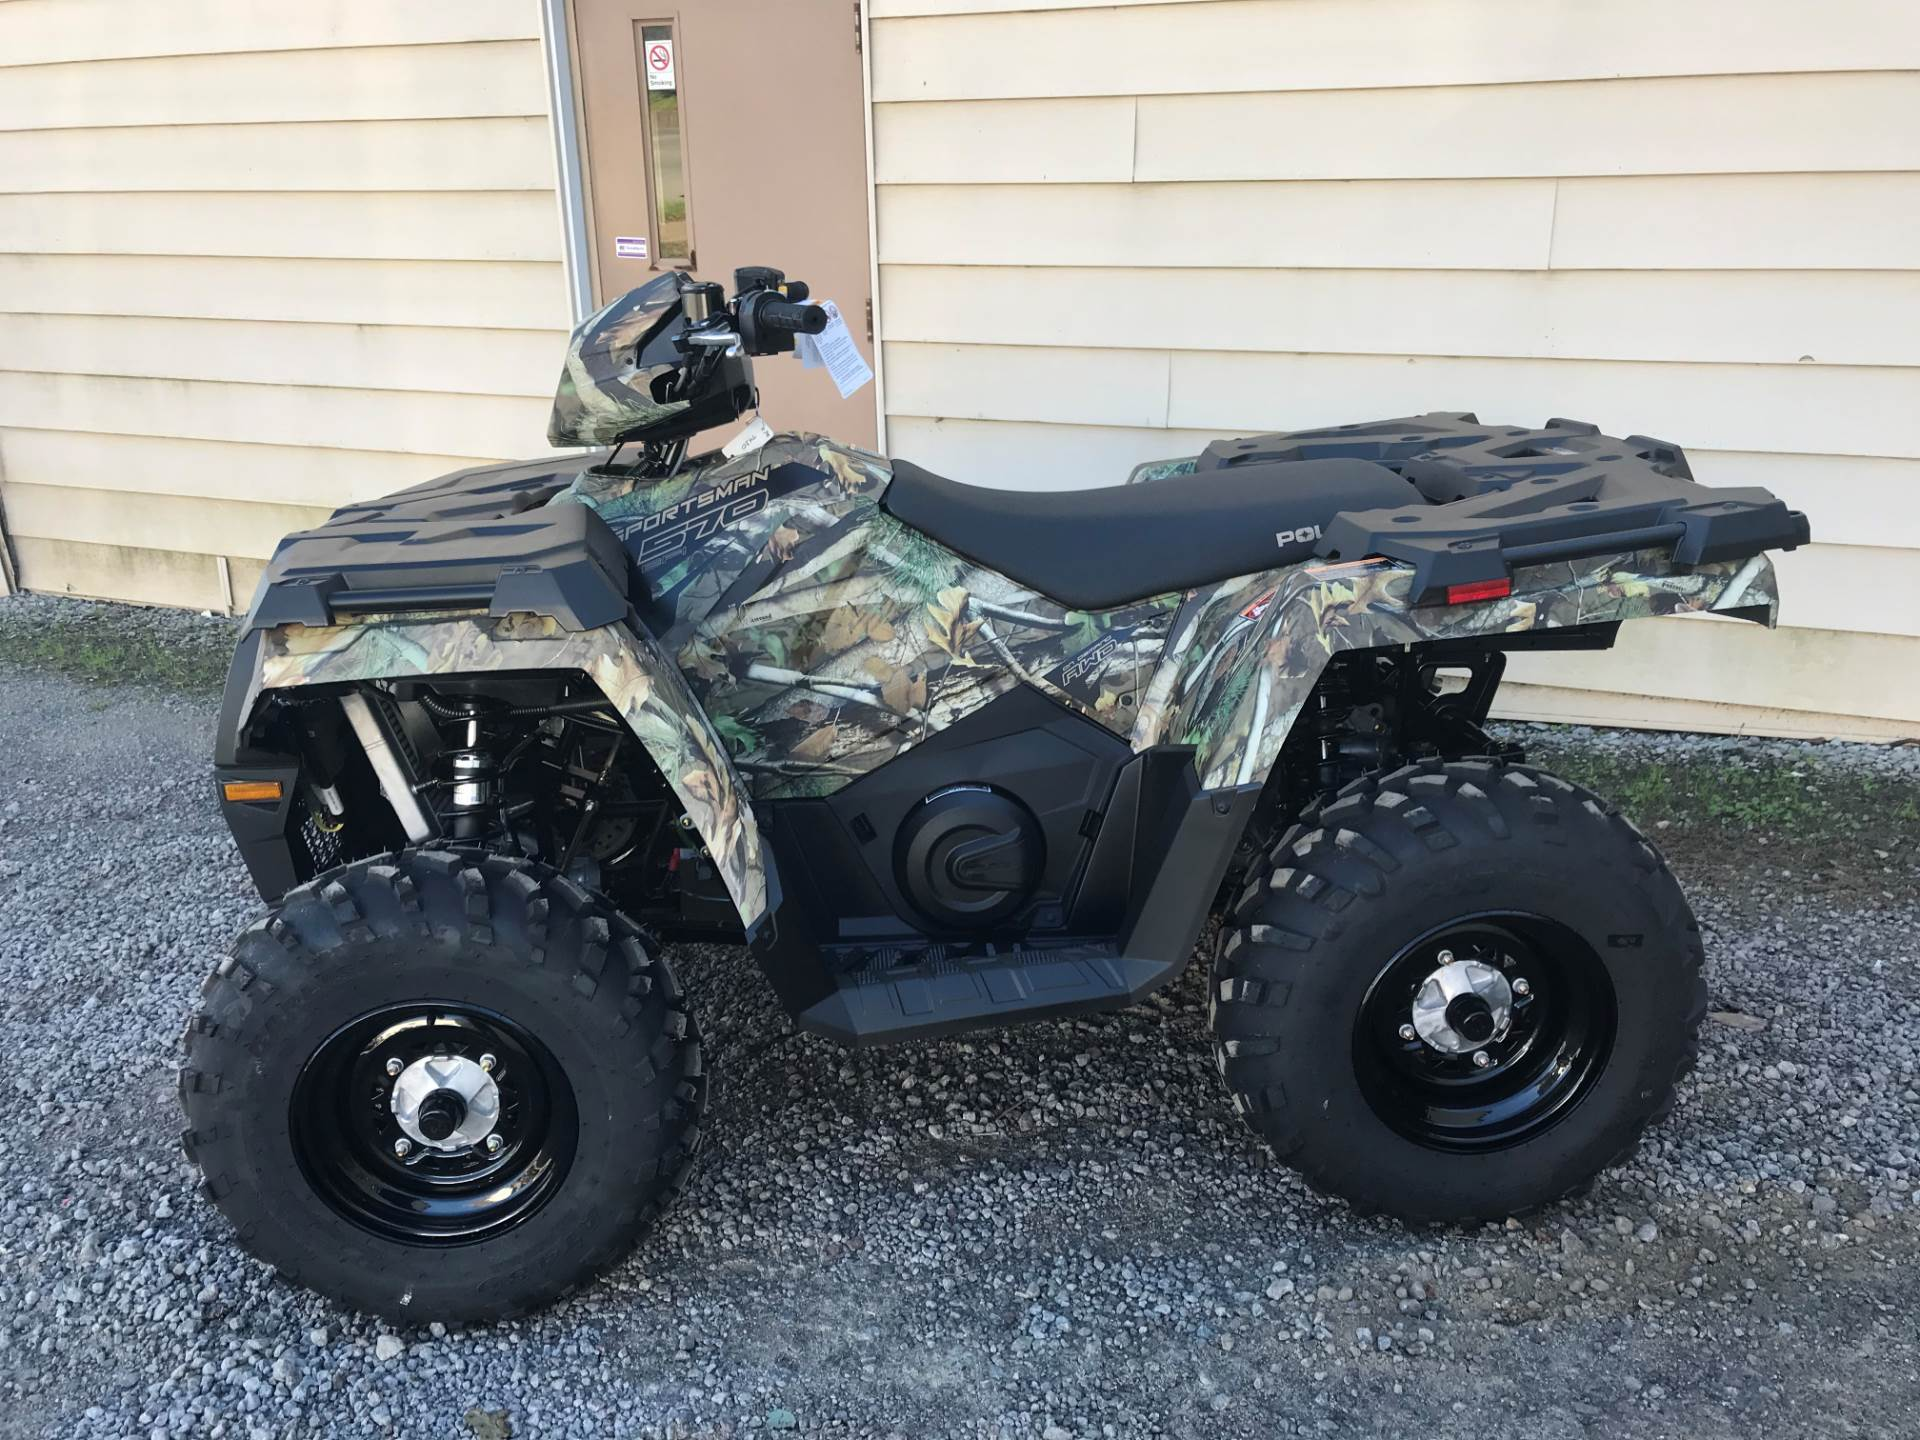 2019 Polaris Sportsman 570 EPS Camo in Coraopolis, Pennsylvania